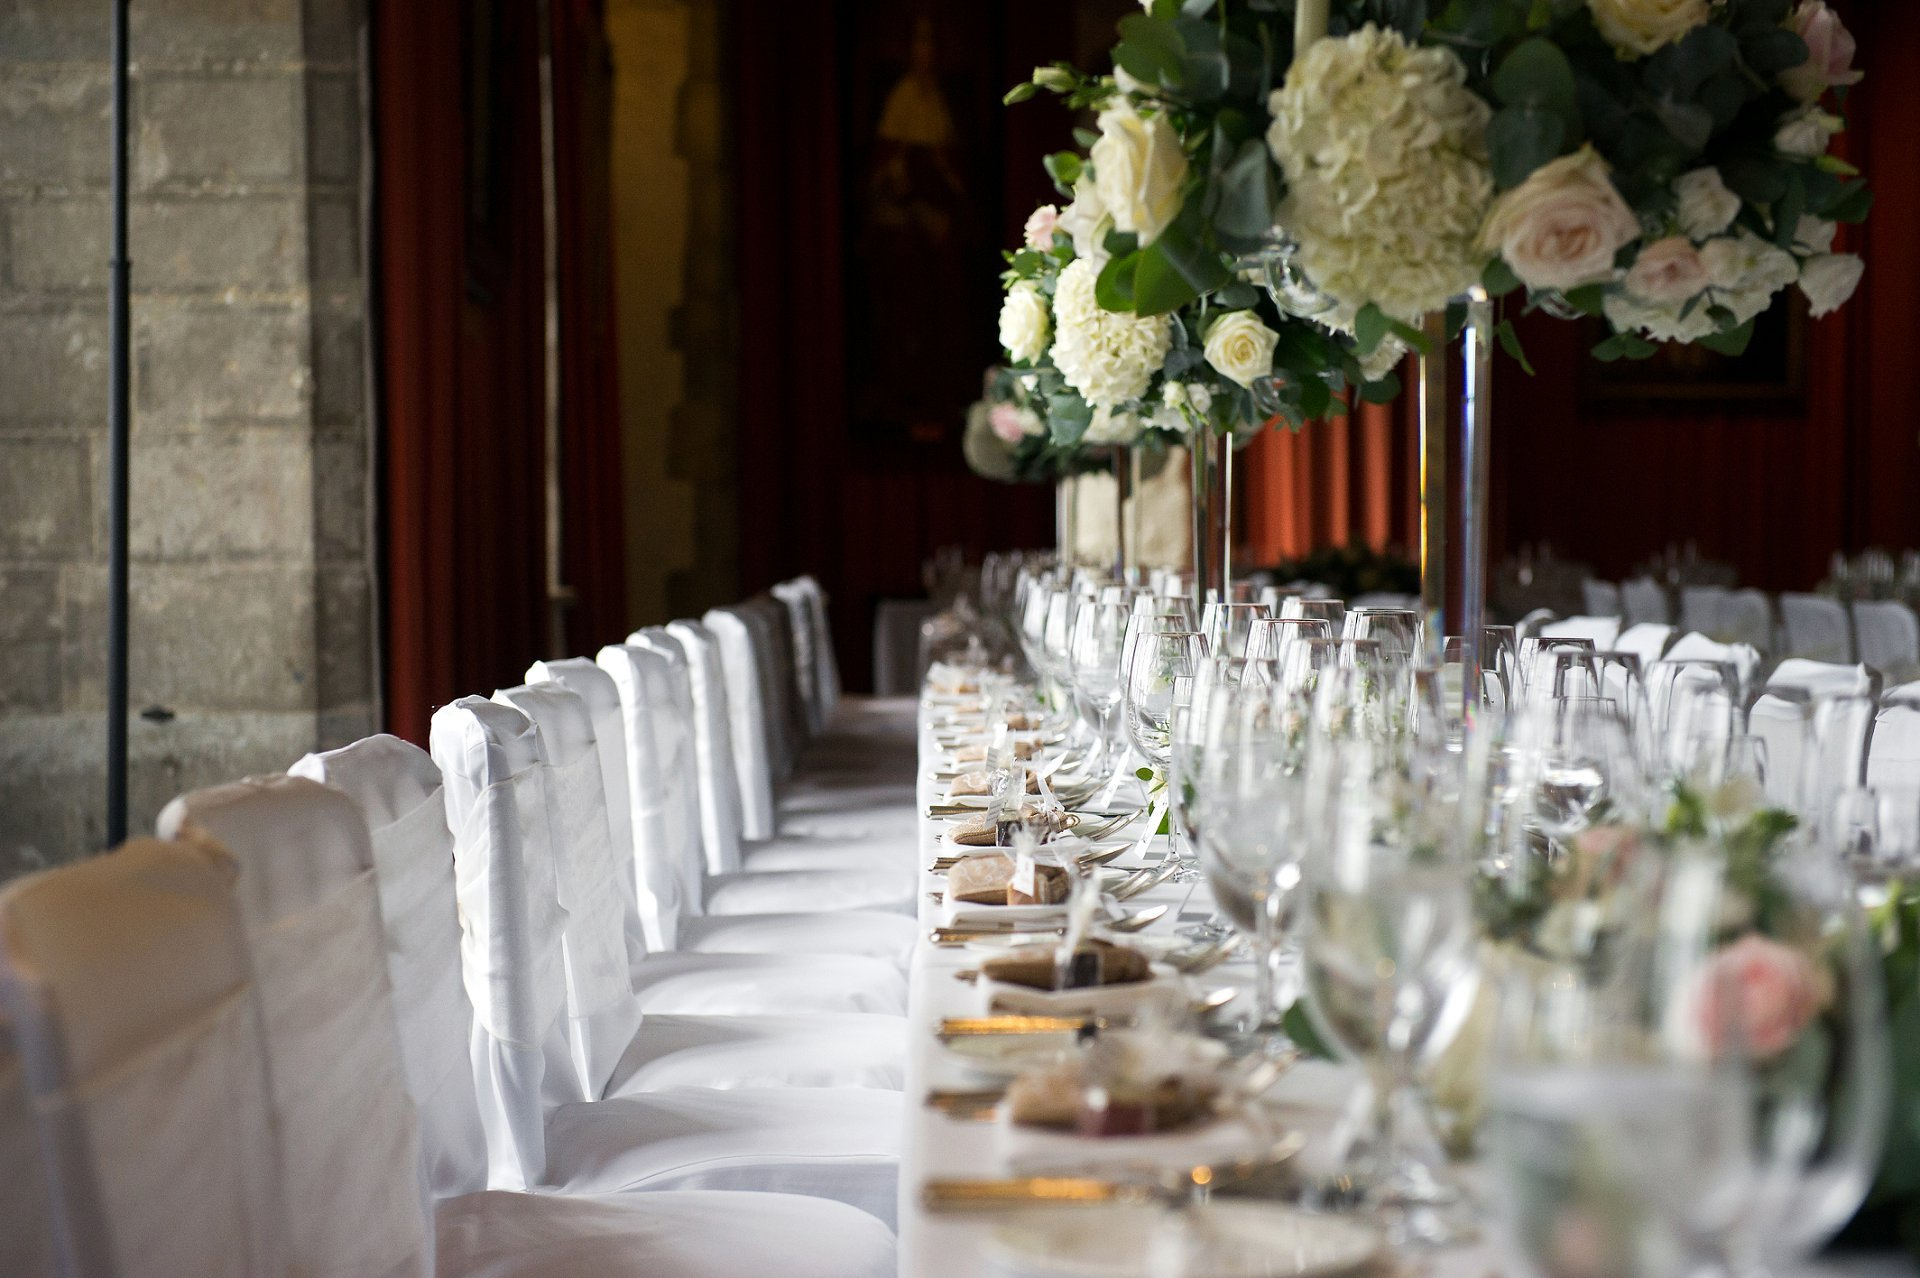 View down the length of the table in the Henry VIII Banqueting Room laid for a Summer wedding breakfast